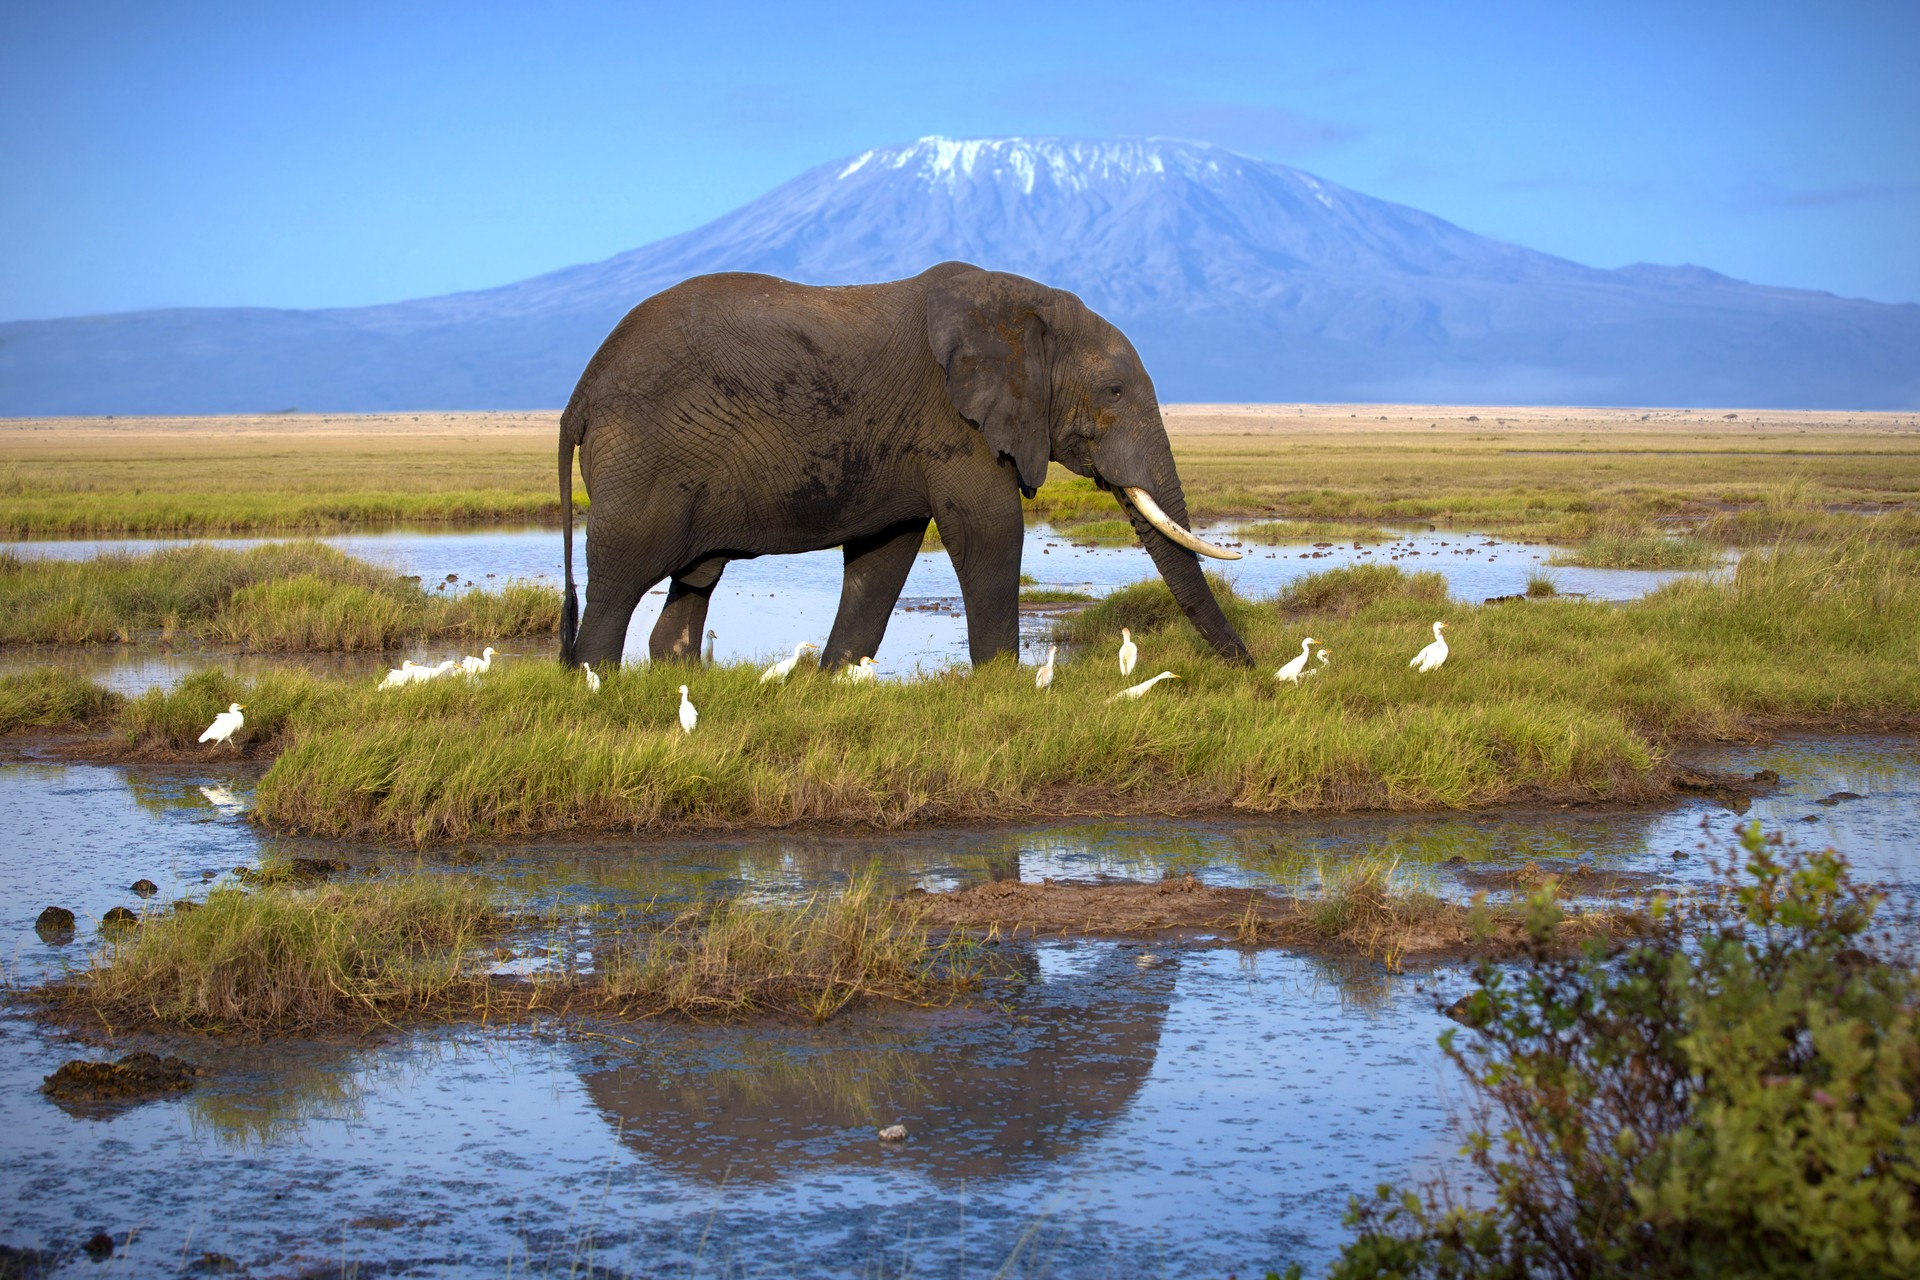 Elephant in Tanzania, Kilimanjaro in background